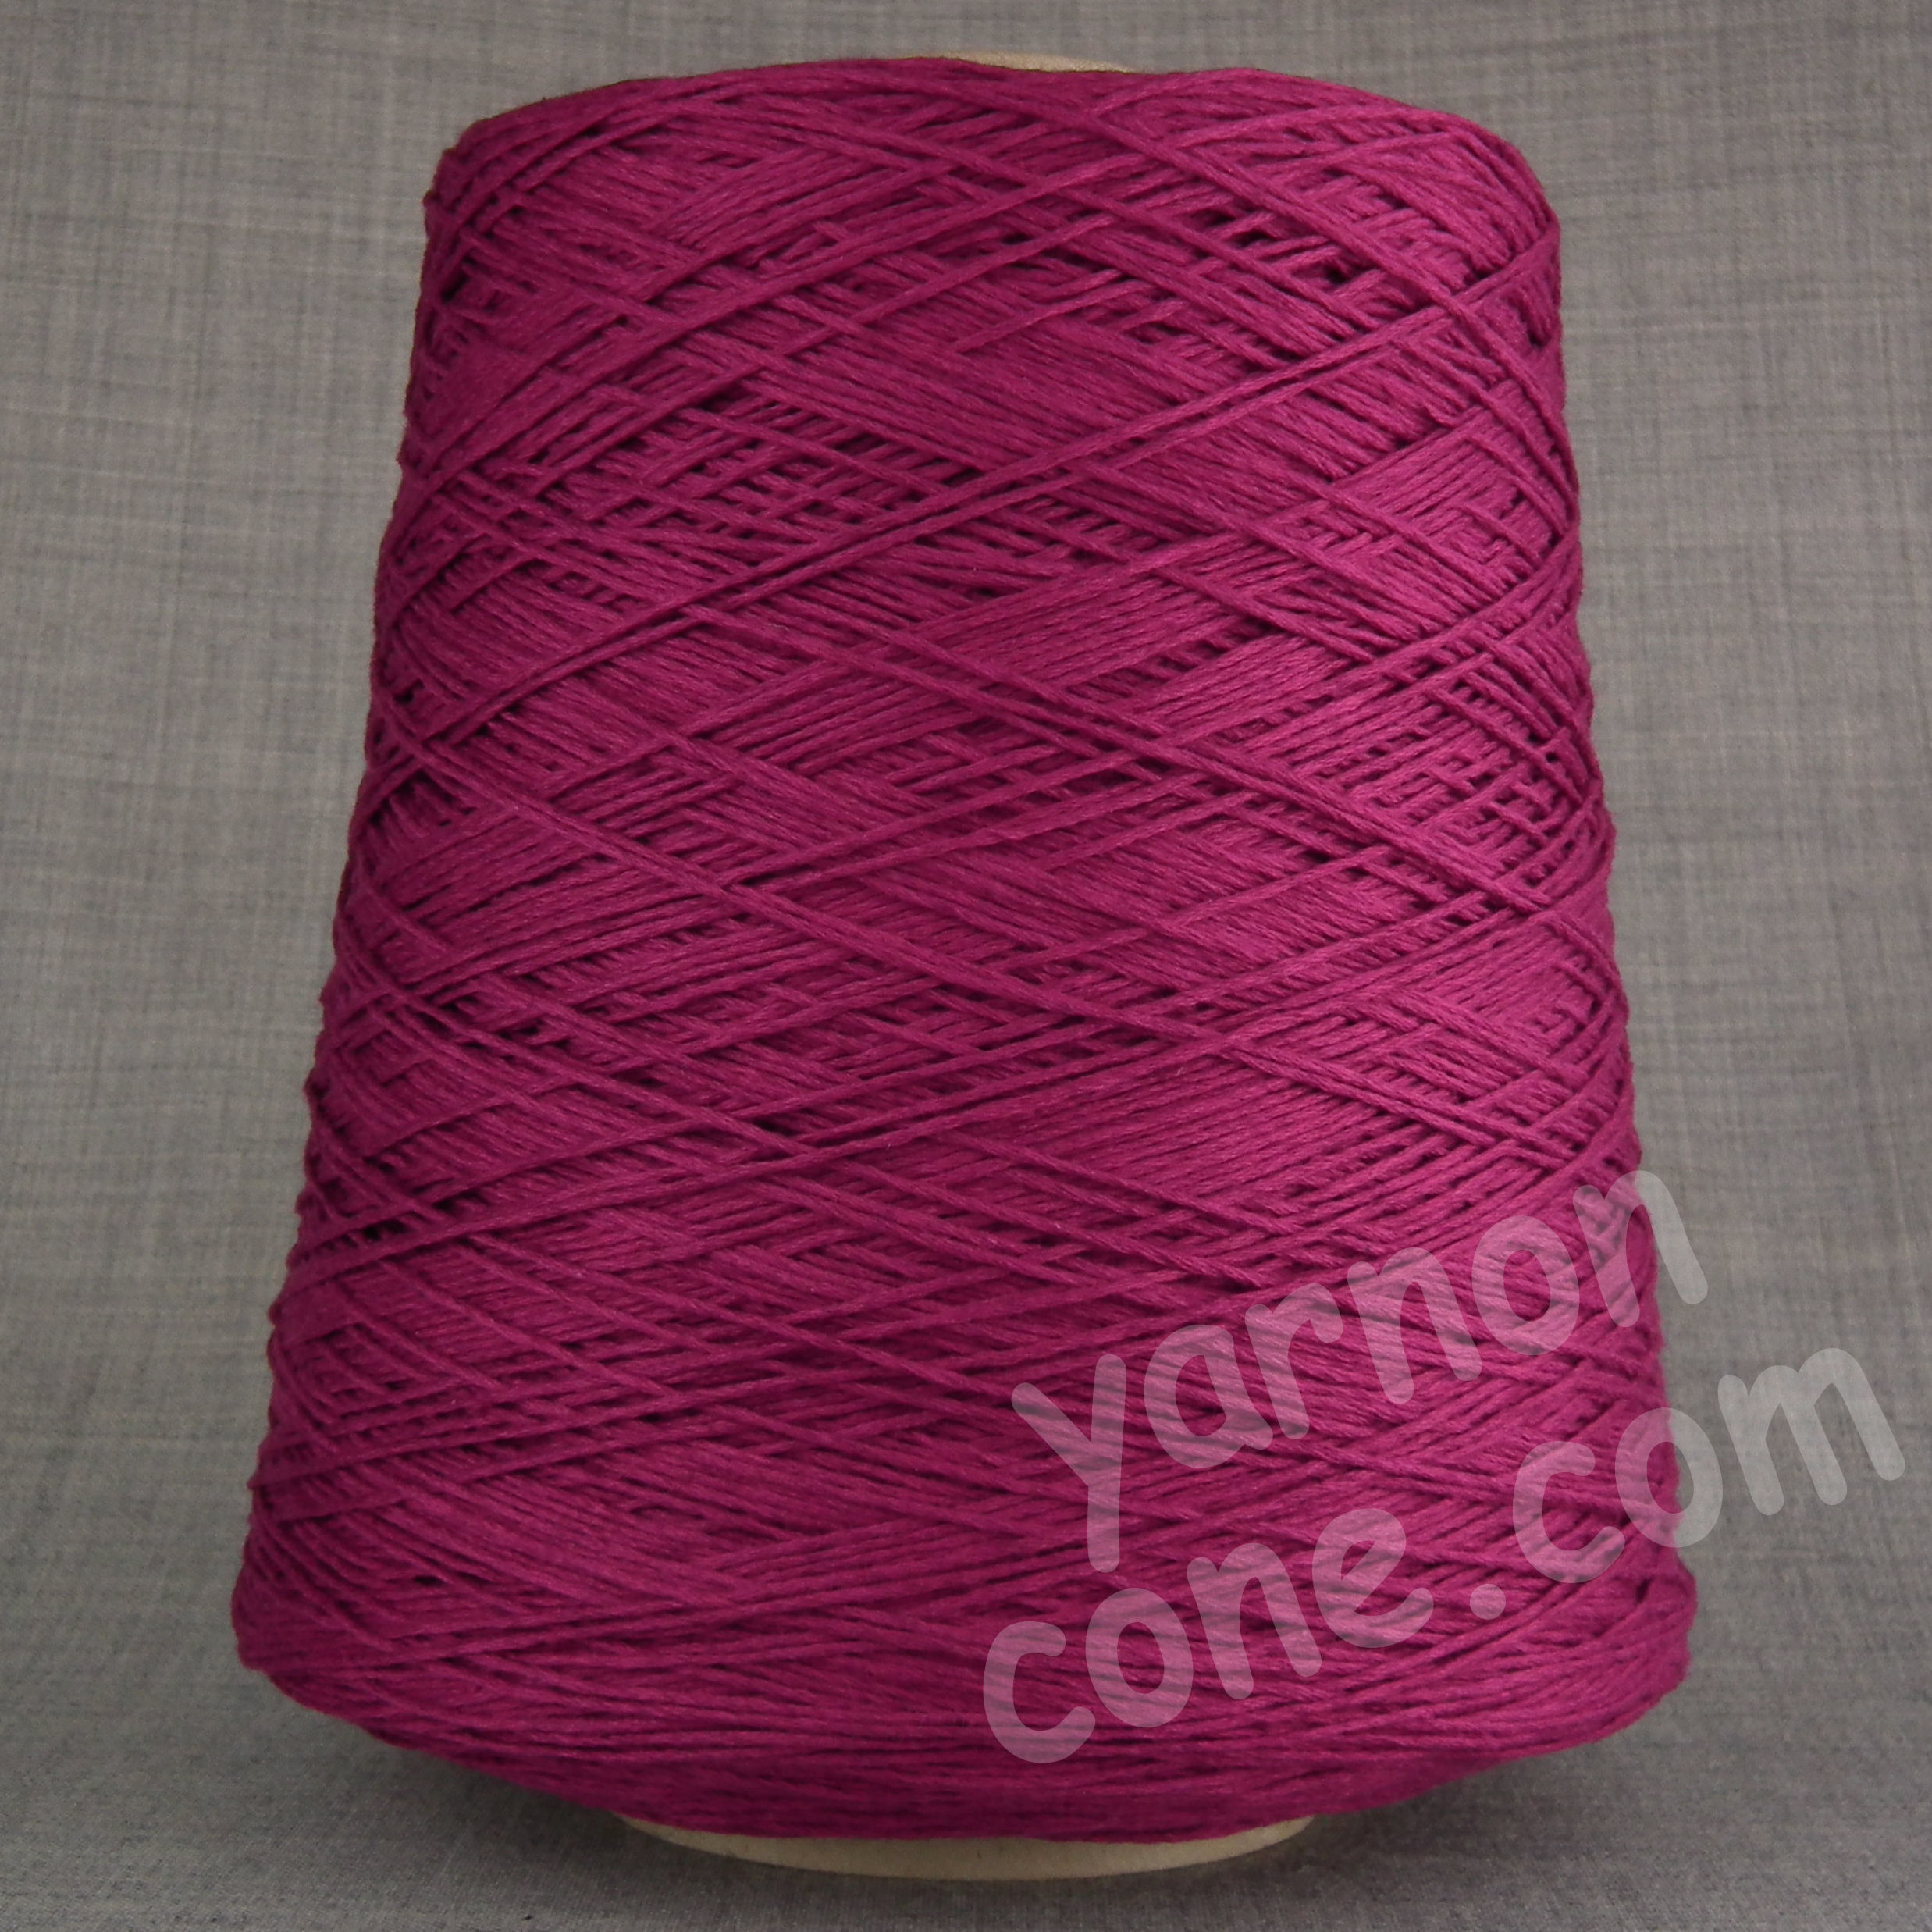 cashmere cotton soft yarn on cone 4 ply knitting weaving crochet luxury UK mulberry pink purple